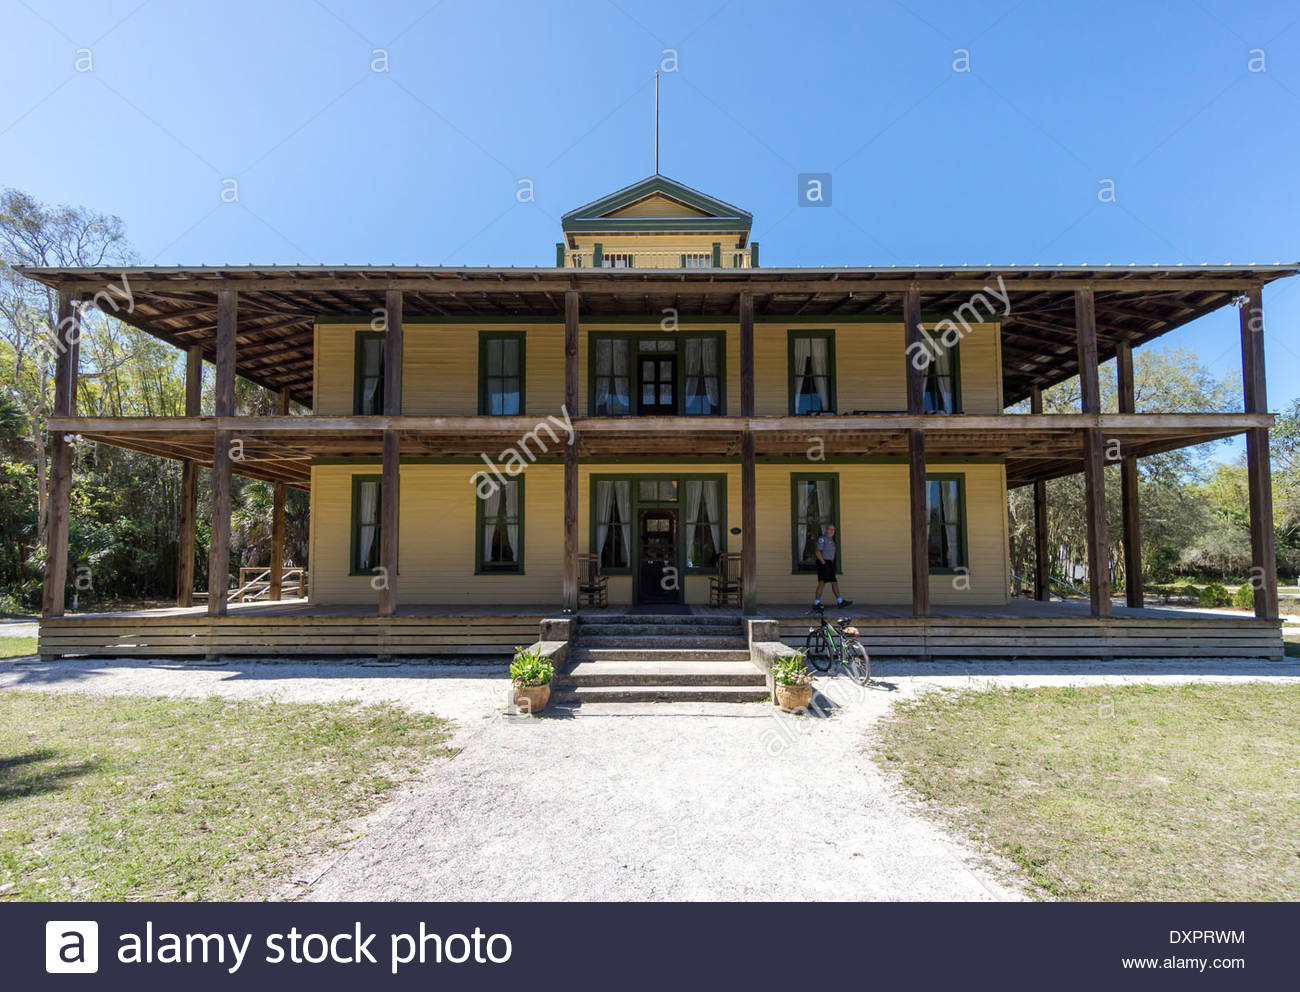 Planetary Court building at the Koreshan State Historic Site in Estero, Florida - Stock Image